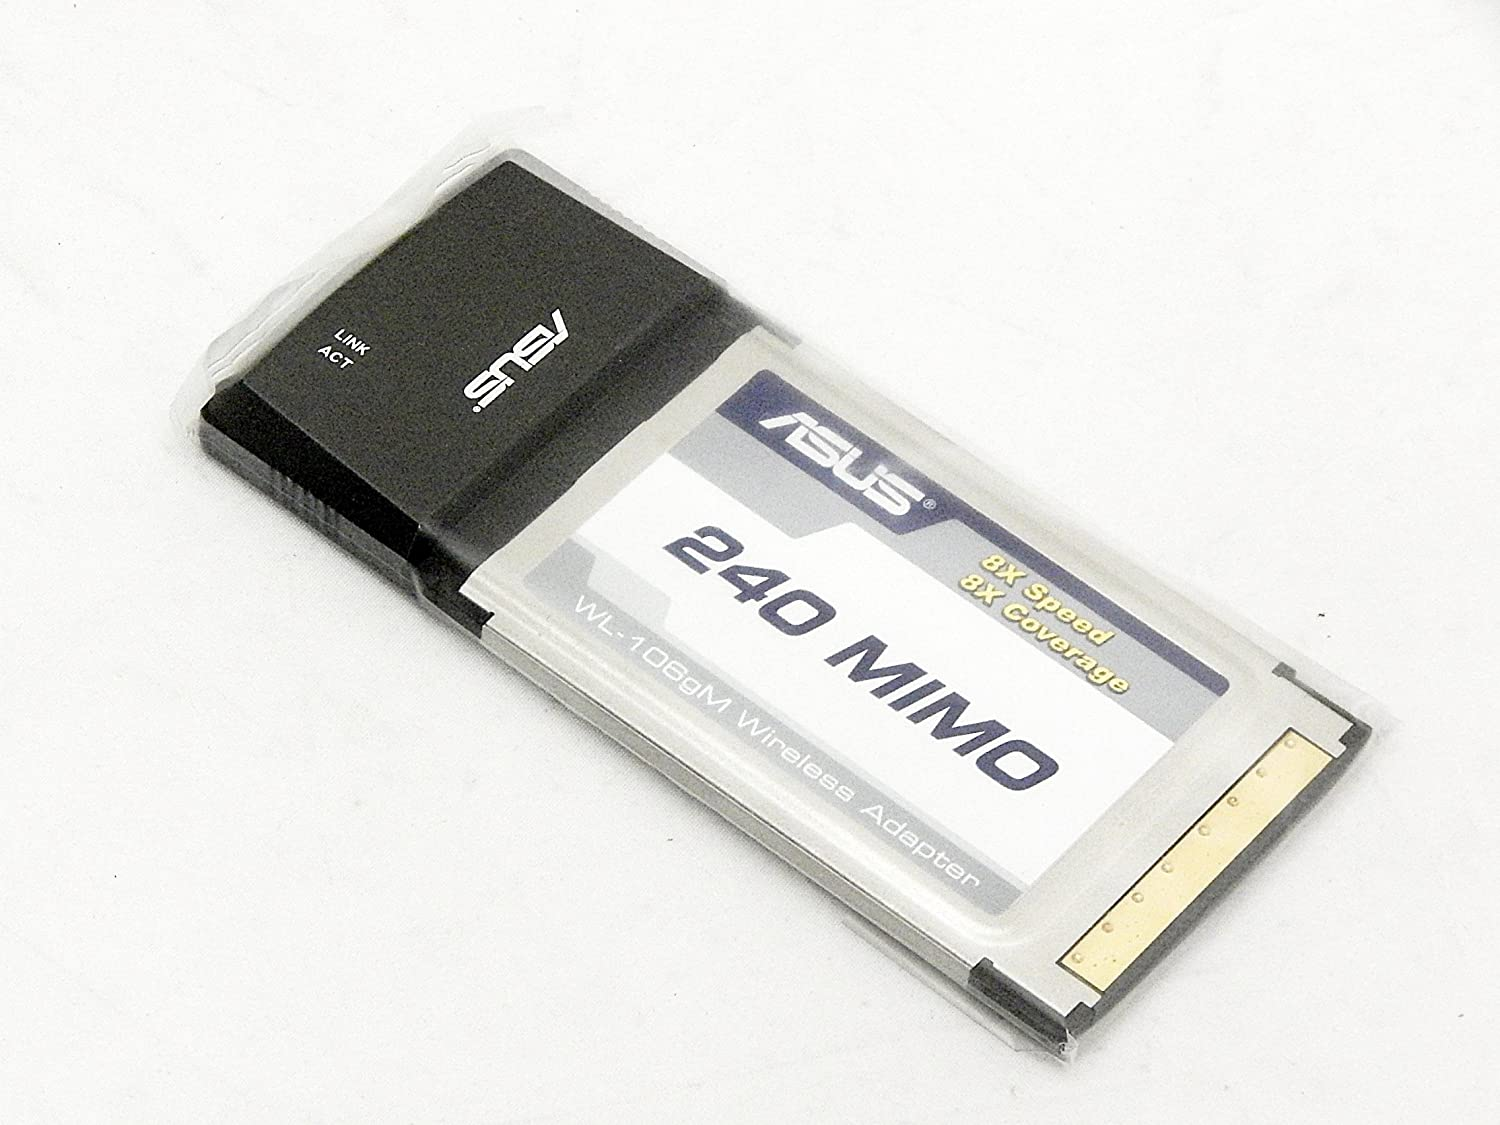 ASUS 240 MIMO 802.11G ADAPTER WINDOWS 7 64 DRIVER